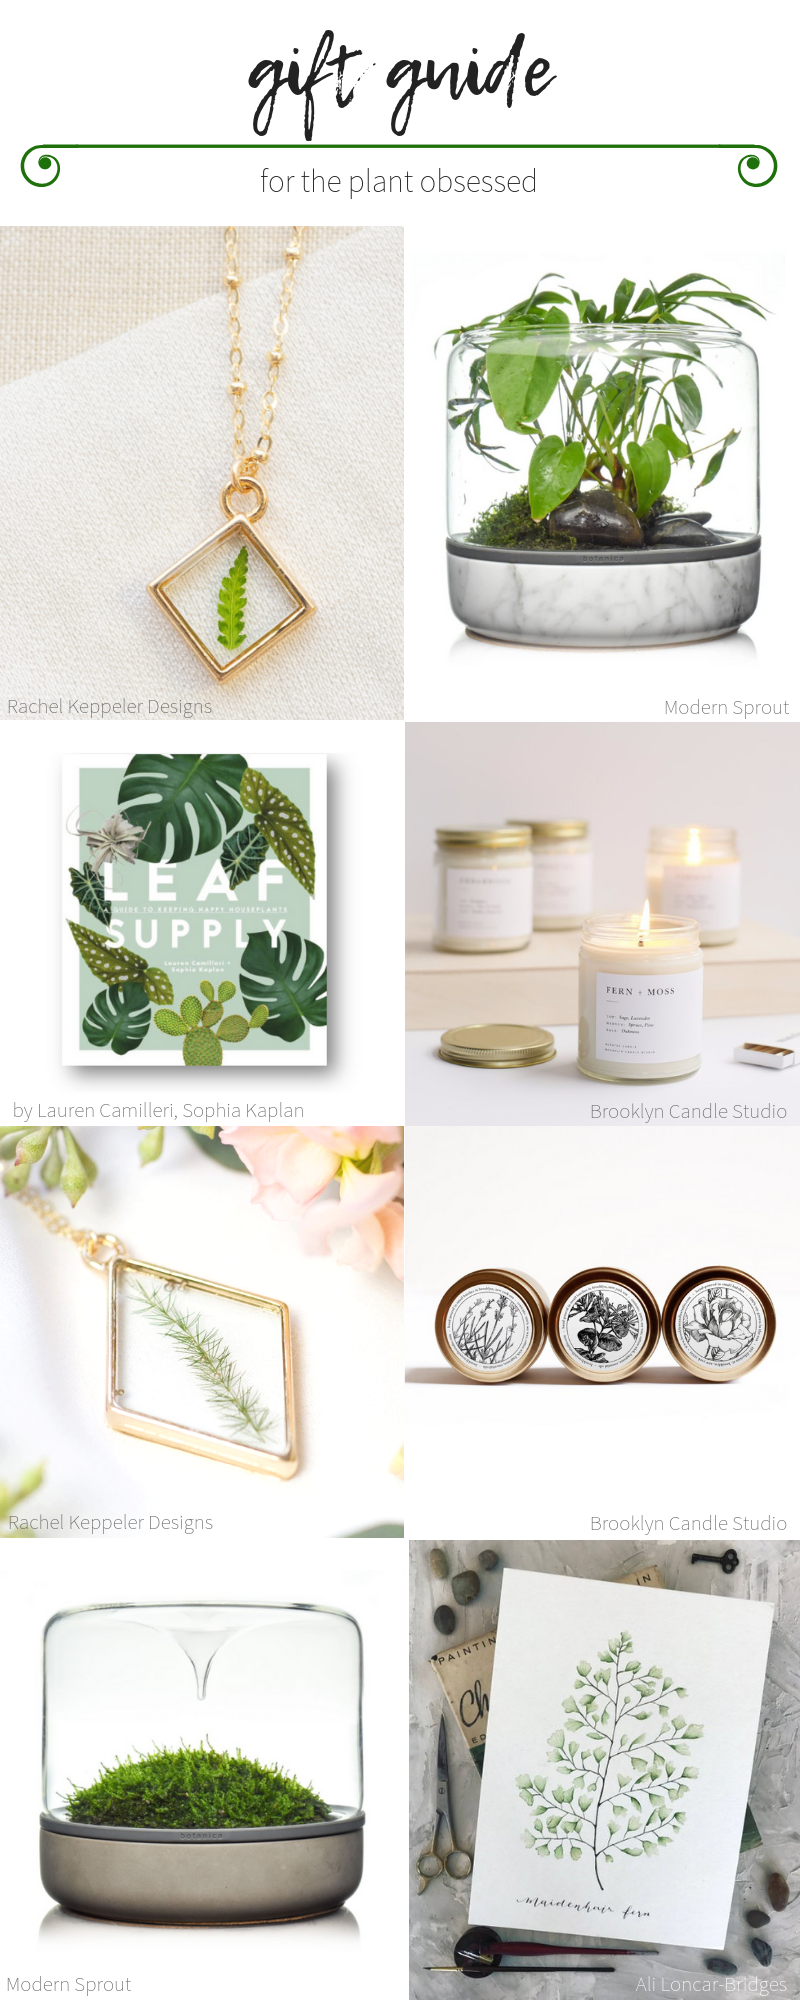 For the love of Ferns Gift Guide